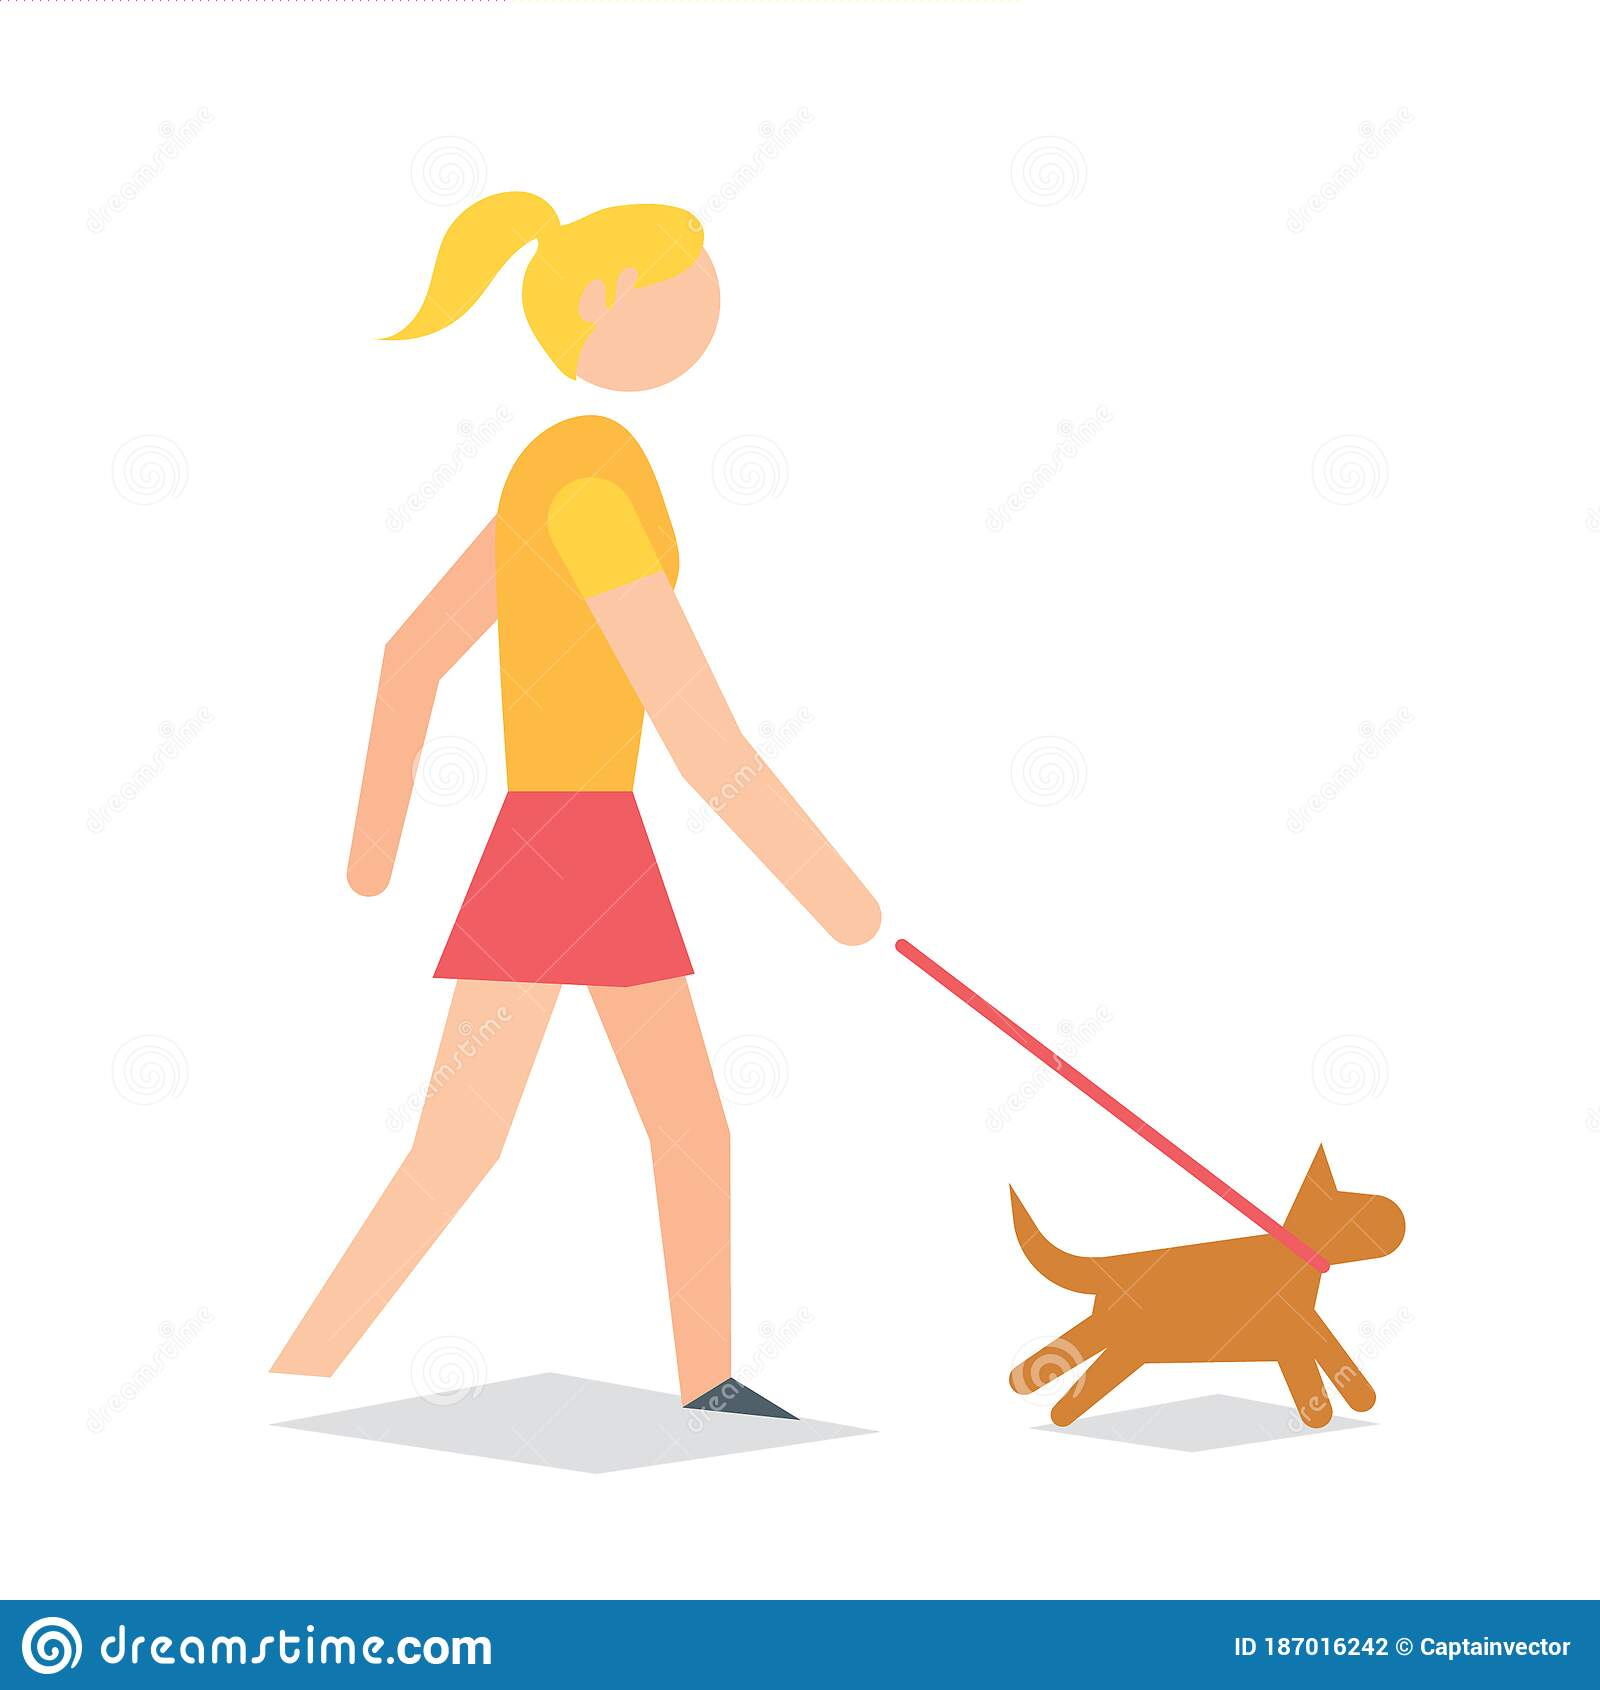 girl taking dog for walk vector illustration decorative design stock vector illustration of figures character 187016242 girl taking dog for walk vector illustration decorative design stock vector illustration of figures character 187016242